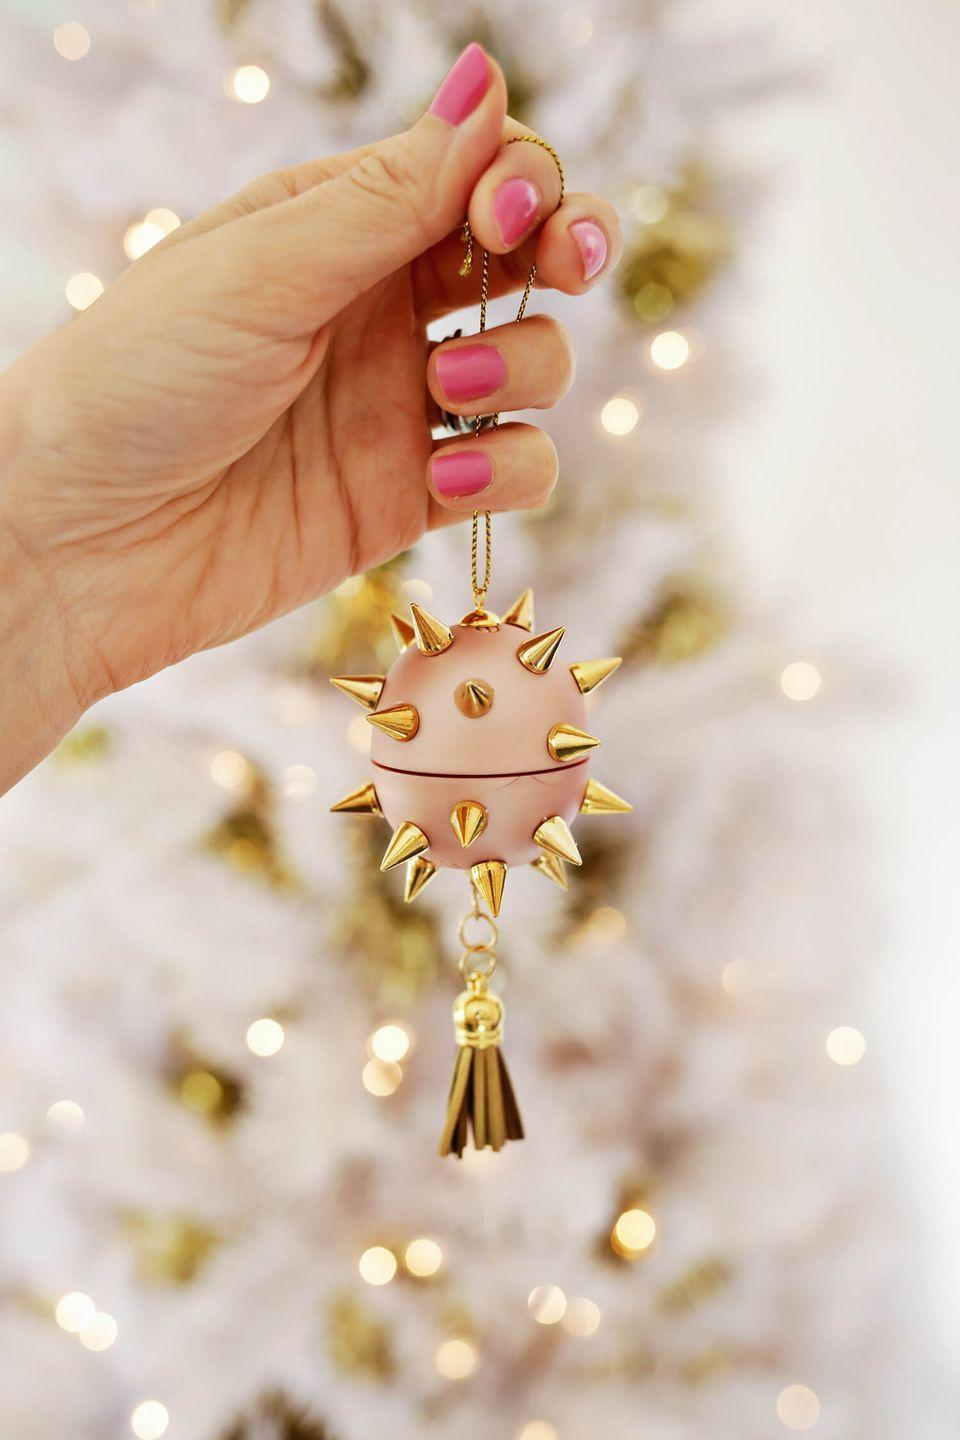 """<p>Here's a fun idea: Assemble DIY ornament kits as Christmas gifts for friends and family members. Tuck everything they need—a circular lip balm, metal studs, a tassel, and some craft glue—into a tiny bakery box with a holiday greeting that includes simple instructions. </p><p><em>Get the tutorial at <a href=""""https://abeautifulmess.com/upcycle-a-lip-balm-into-an-ornament/"""" rel=""""nofollow noopener"""" target=""""_blank"""" data-ylk=""""slk:A Beautiful Mess"""" class=""""link rapid-noclick-resp"""">A Beautiful Mess</a>.</em></p><p><a class=""""link rapid-noclick-resp"""" href=""""https://www.amazon.com/eos-Organic-Lip-Balm-Sphere/dp/B00B6A9KTU/?tag=syn-yahoo-20&ascsubtag=%5Bartid%7C10072.g.34443405%5Bsrc%7Cyahoo-us"""" rel=""""nofollow noopener"""" target=""""_blank"""" data-ylk=""""slk:SHOP LIP BALM"""">SHOP LIP BALM</a></p>"""